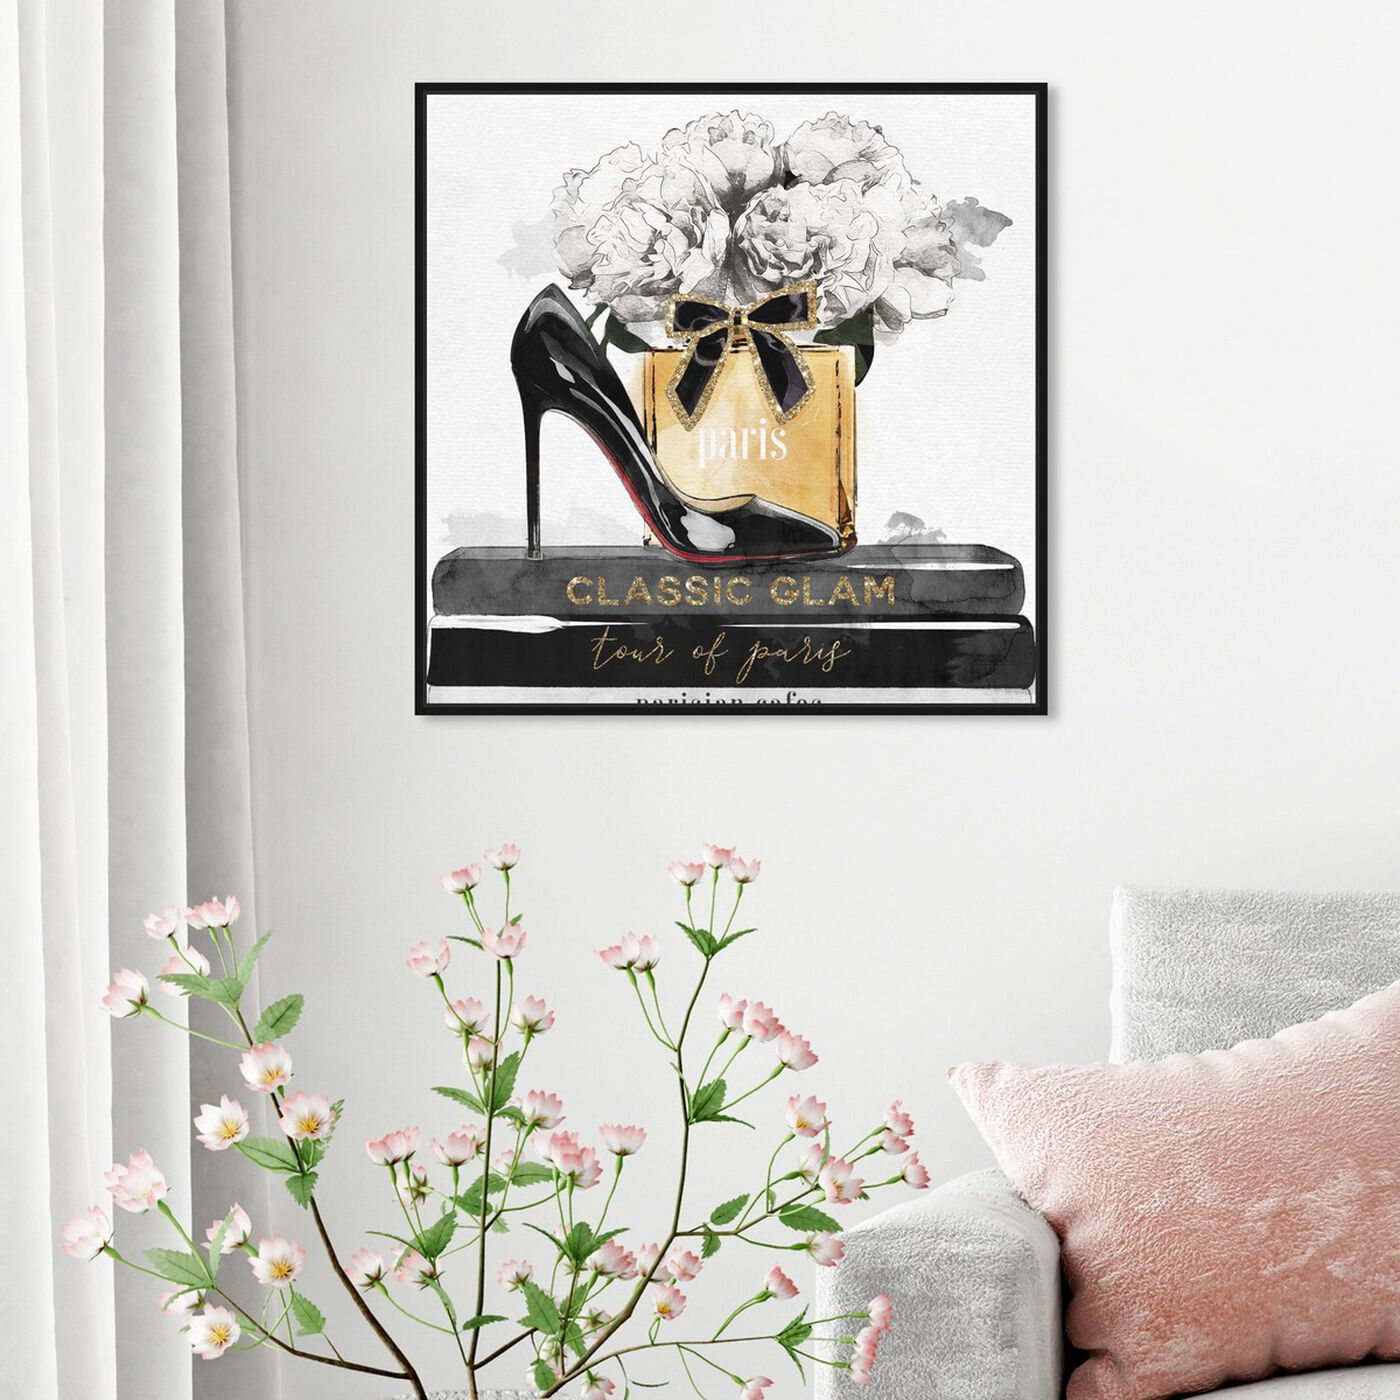 Hanging view of Glamorous Stack featuring fashion and glam and shoes art.